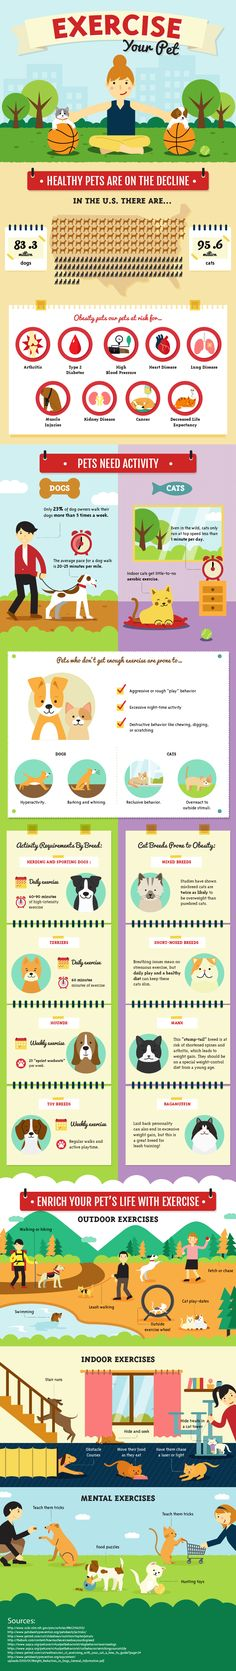 Credits to Amber Kingley for this amazing infographics on Pet Exercise and Activity.